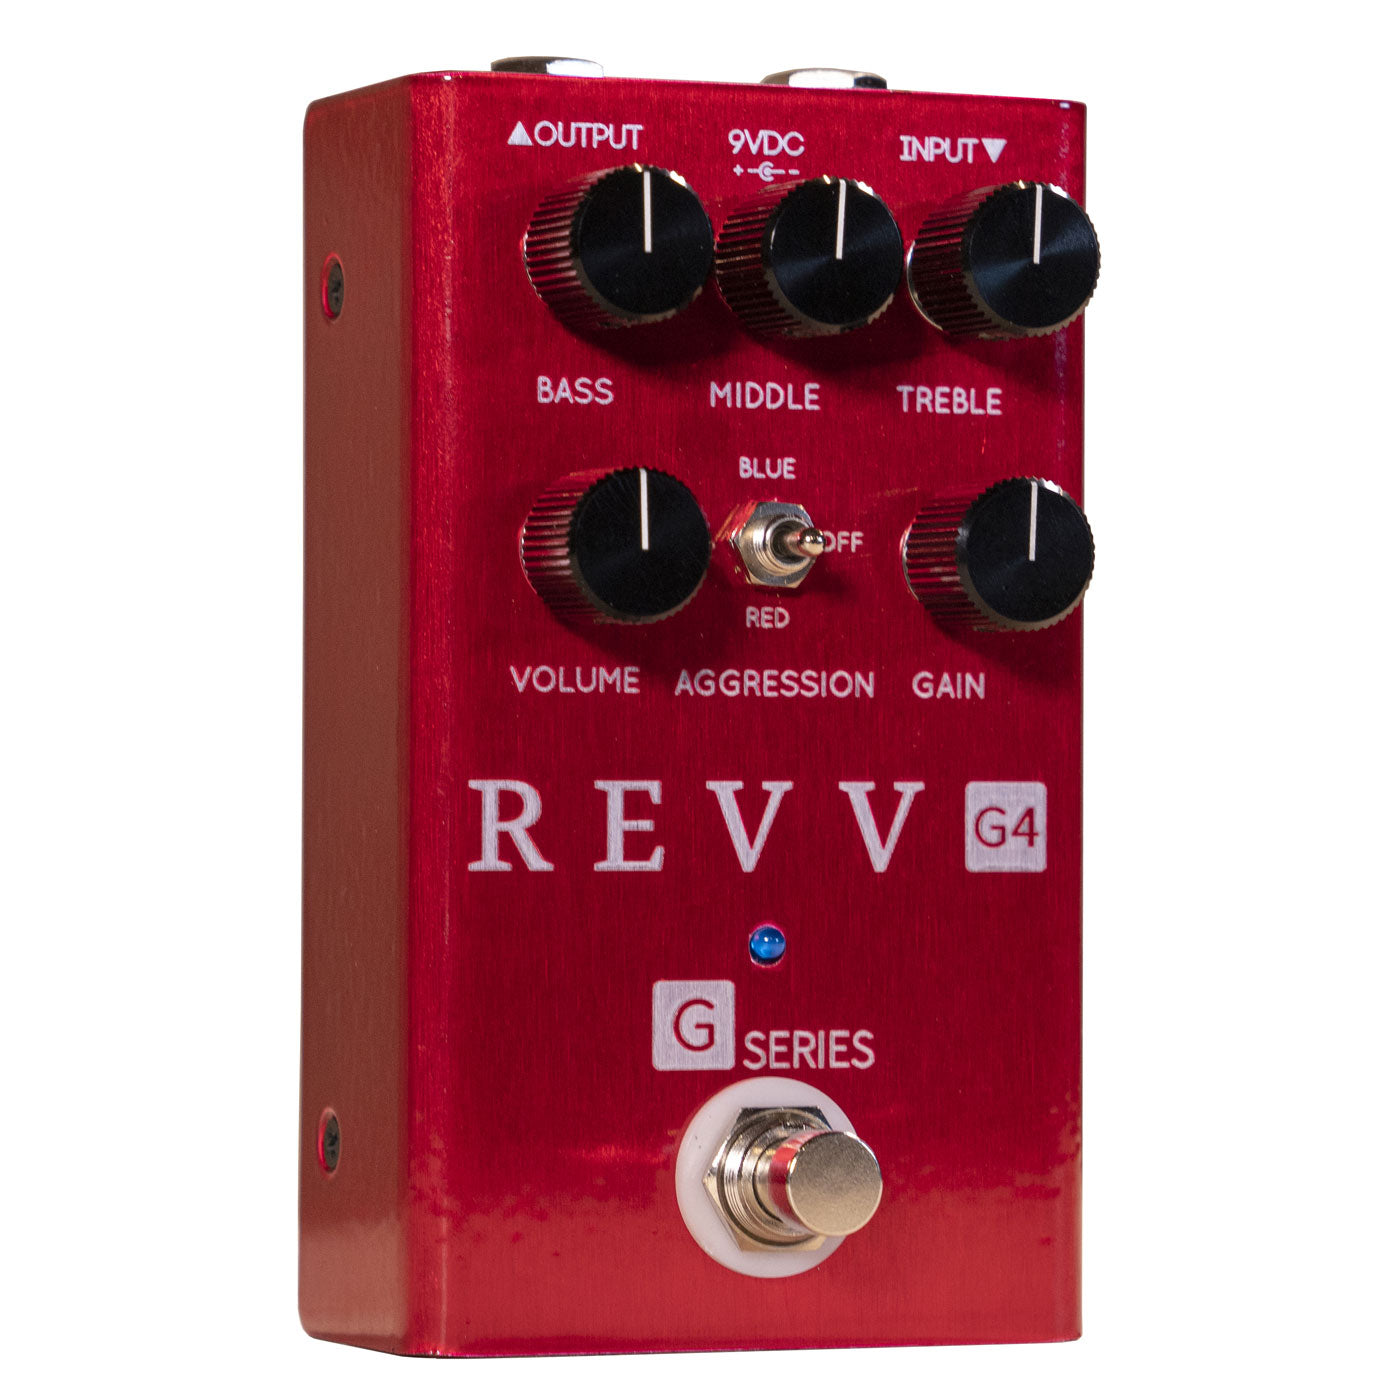 Revv G4 - Distortion Pedal